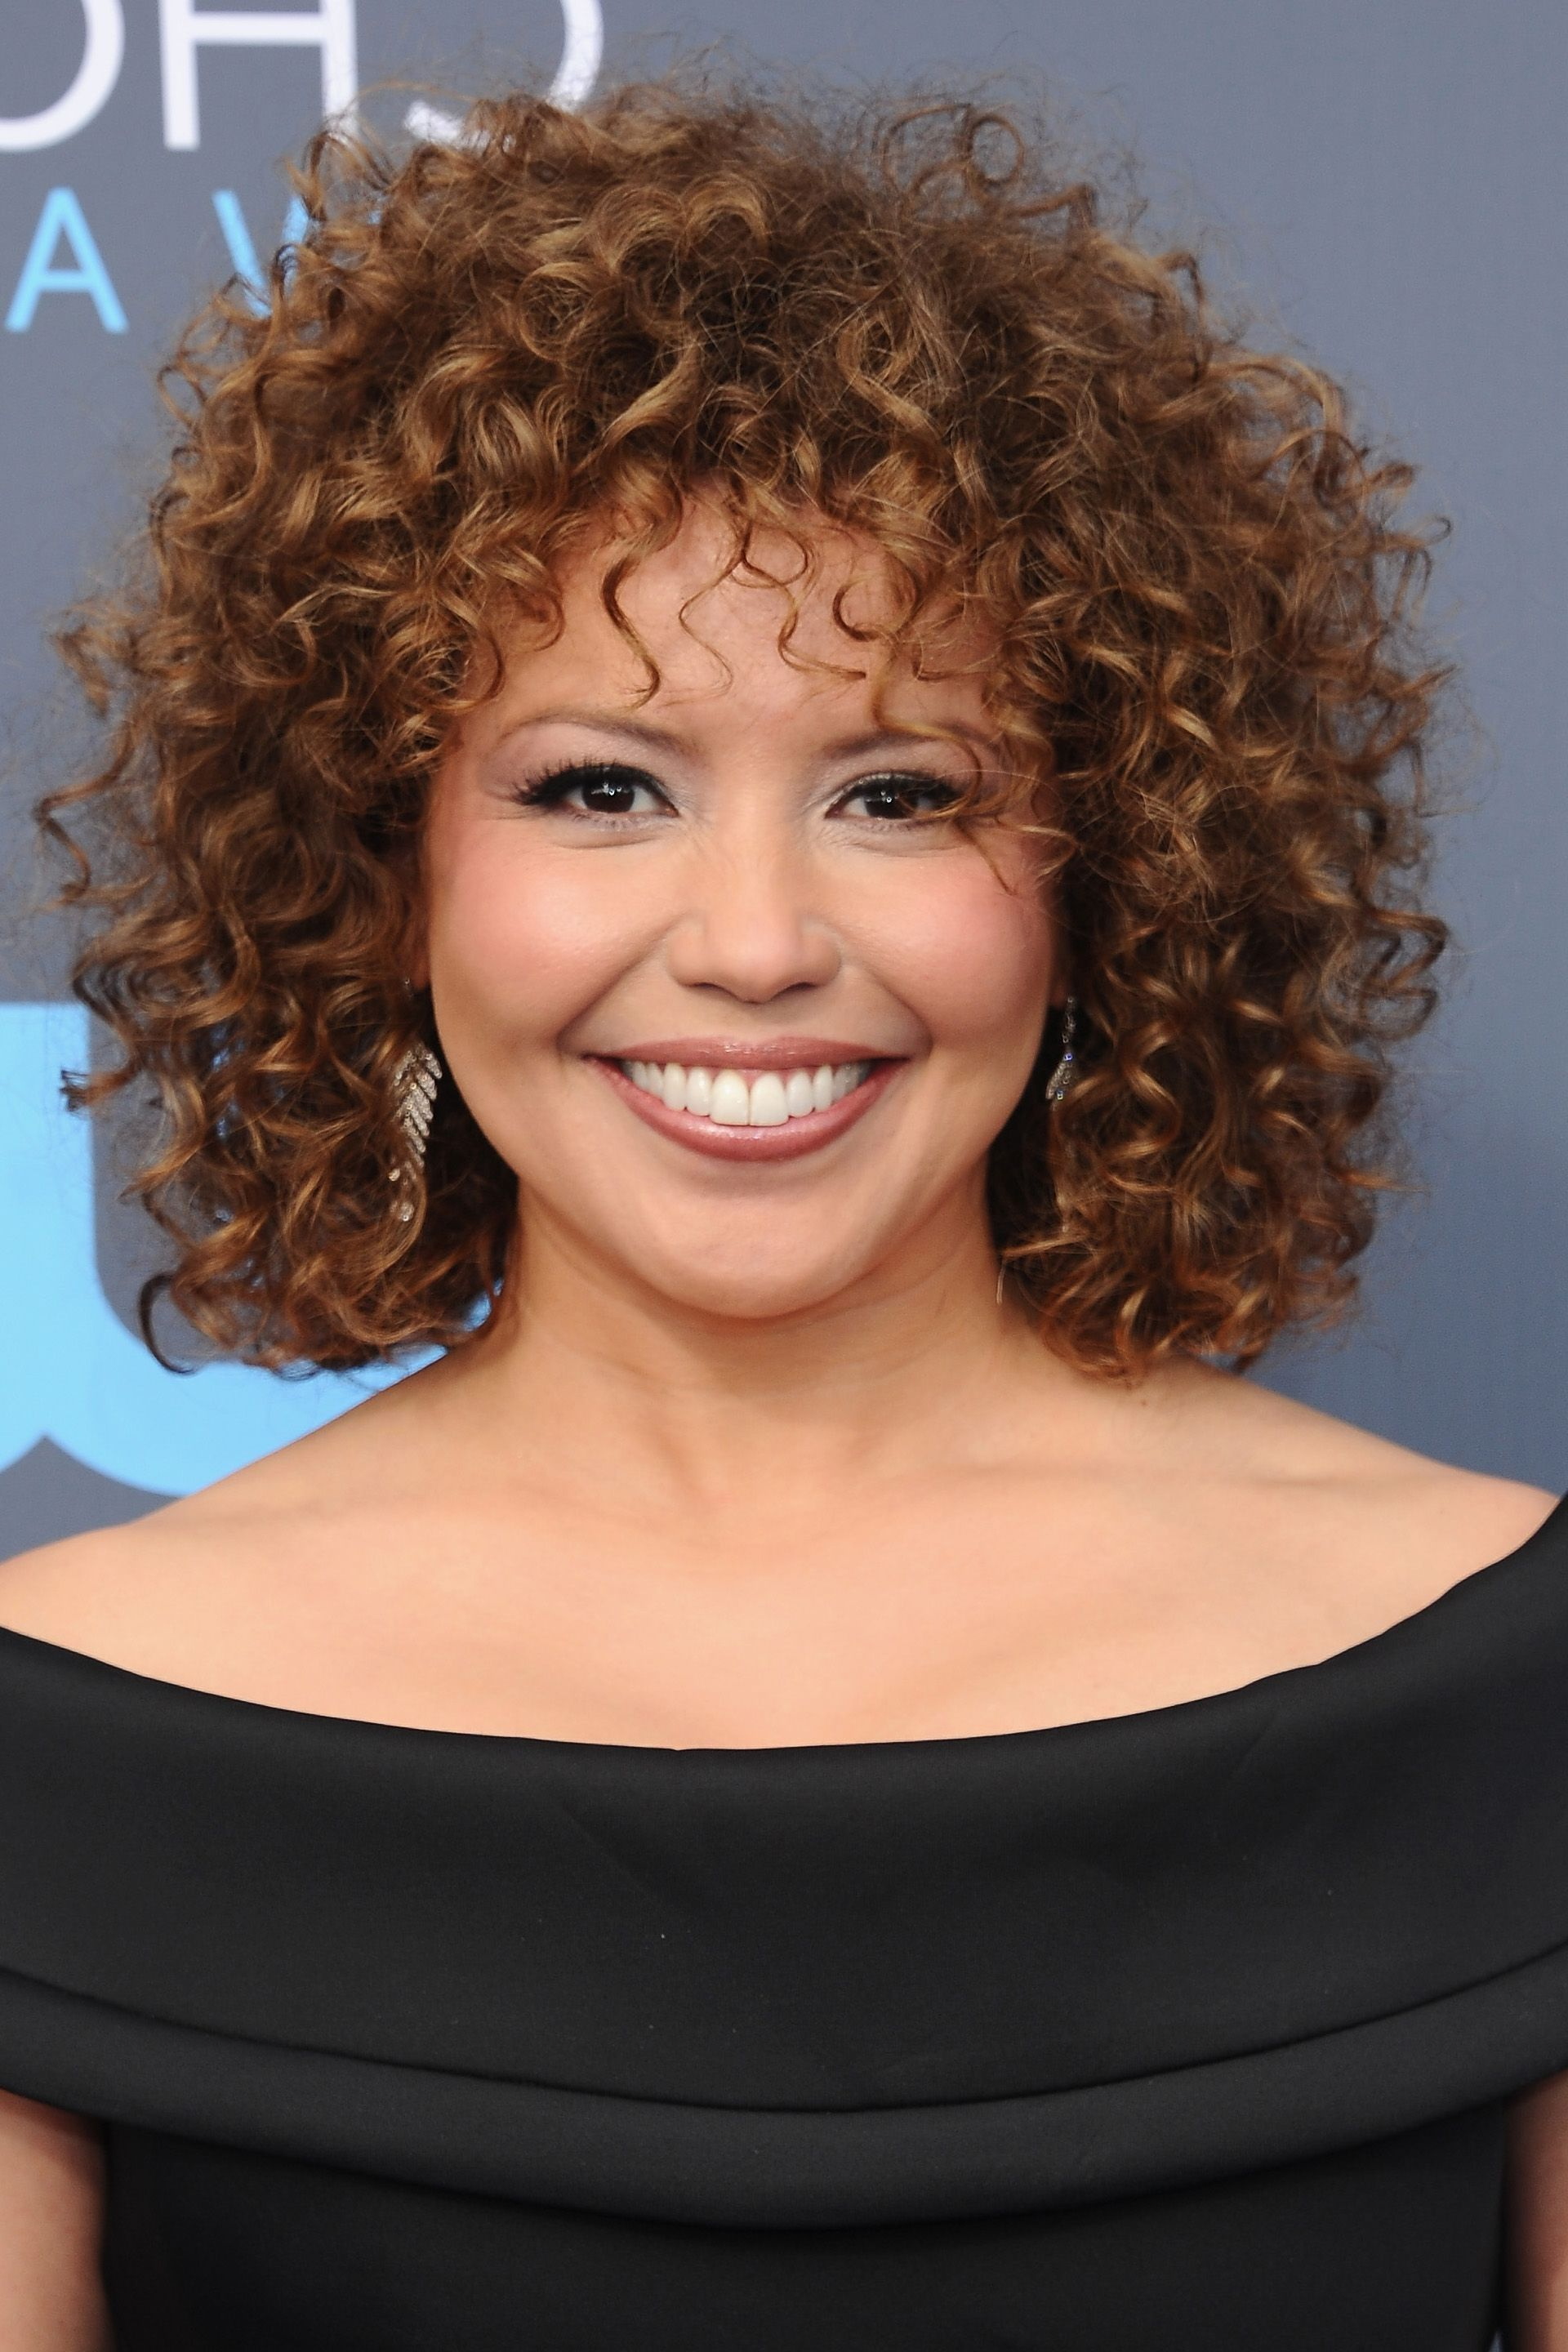 20 Celebrity Short Curly Hair Ideas – Short Haircuts And Hairstyles With Regard To Nape Length Brown Bob Hairstyles With Messy Curls (View 6 of 20)